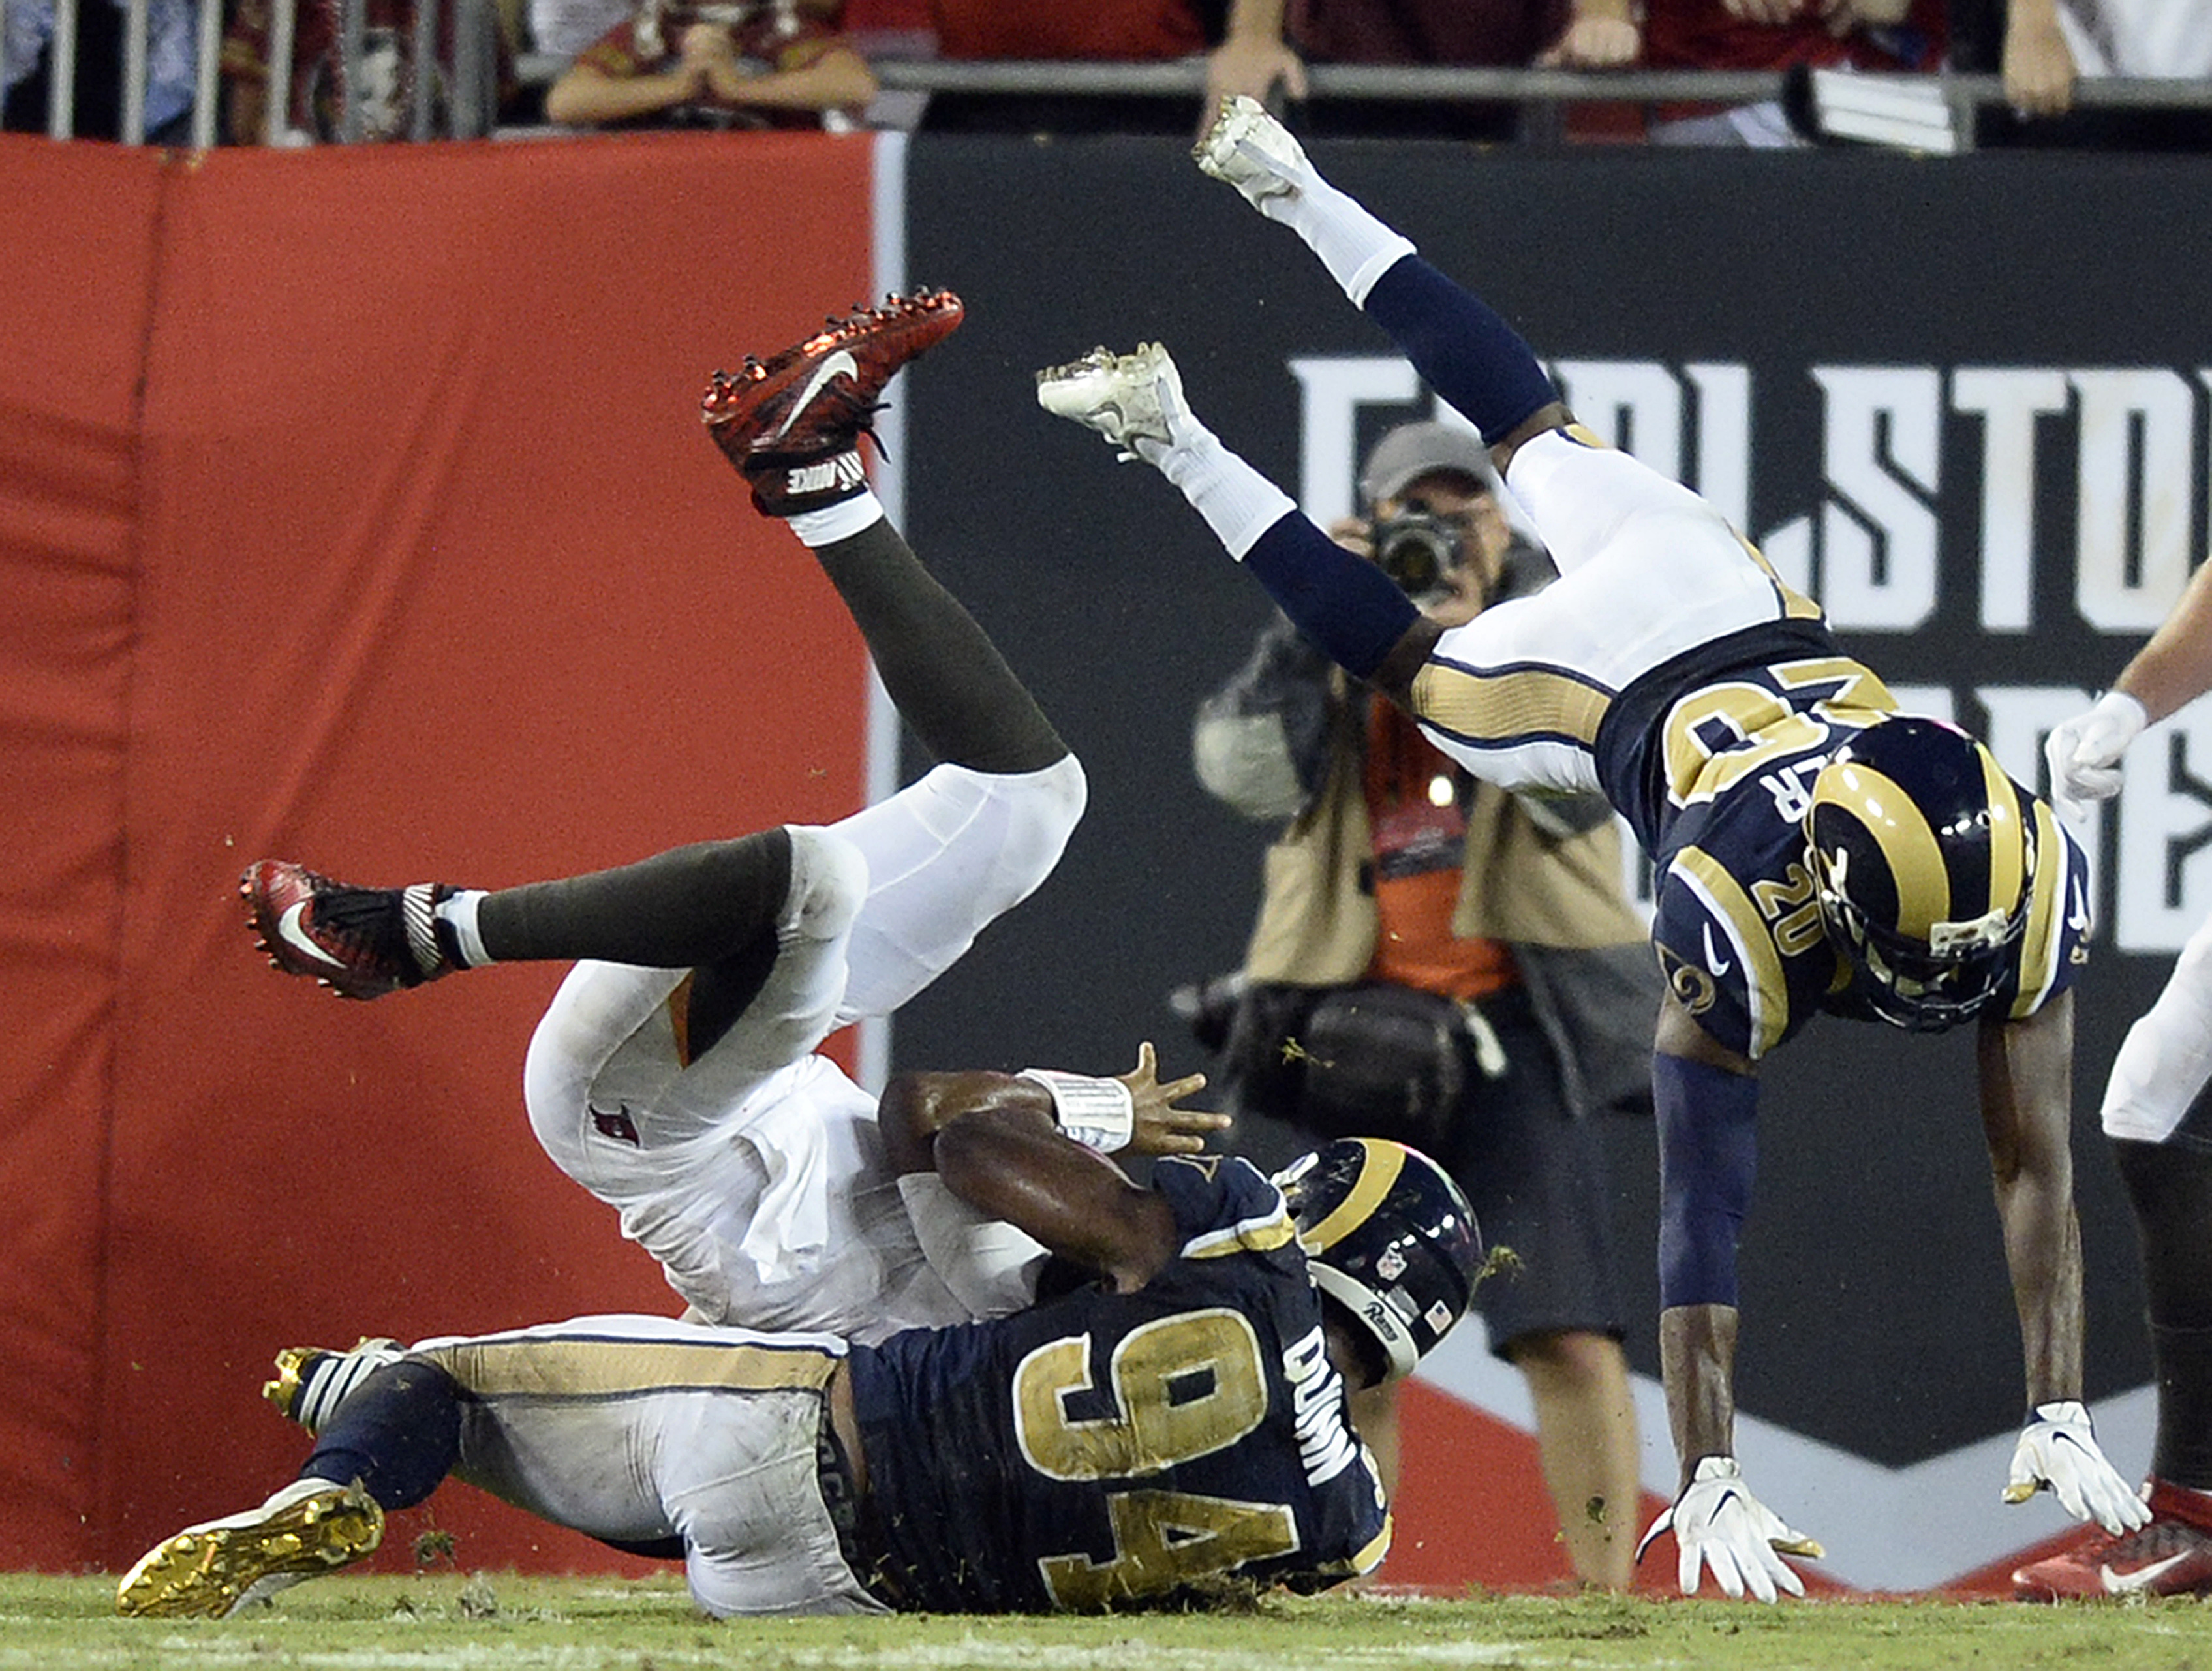 Los Angeles Rams cornerback Lamarcus Joyner (20) and defensive end Robert Quinn (94) stop Tampa Bay Buccaneers quarterback Jameis Winston from scoring during the final play of an NFL football game Sunday, Sept. 25, 2016, in Tampa, Fla. (AP Photo/Jason Beh